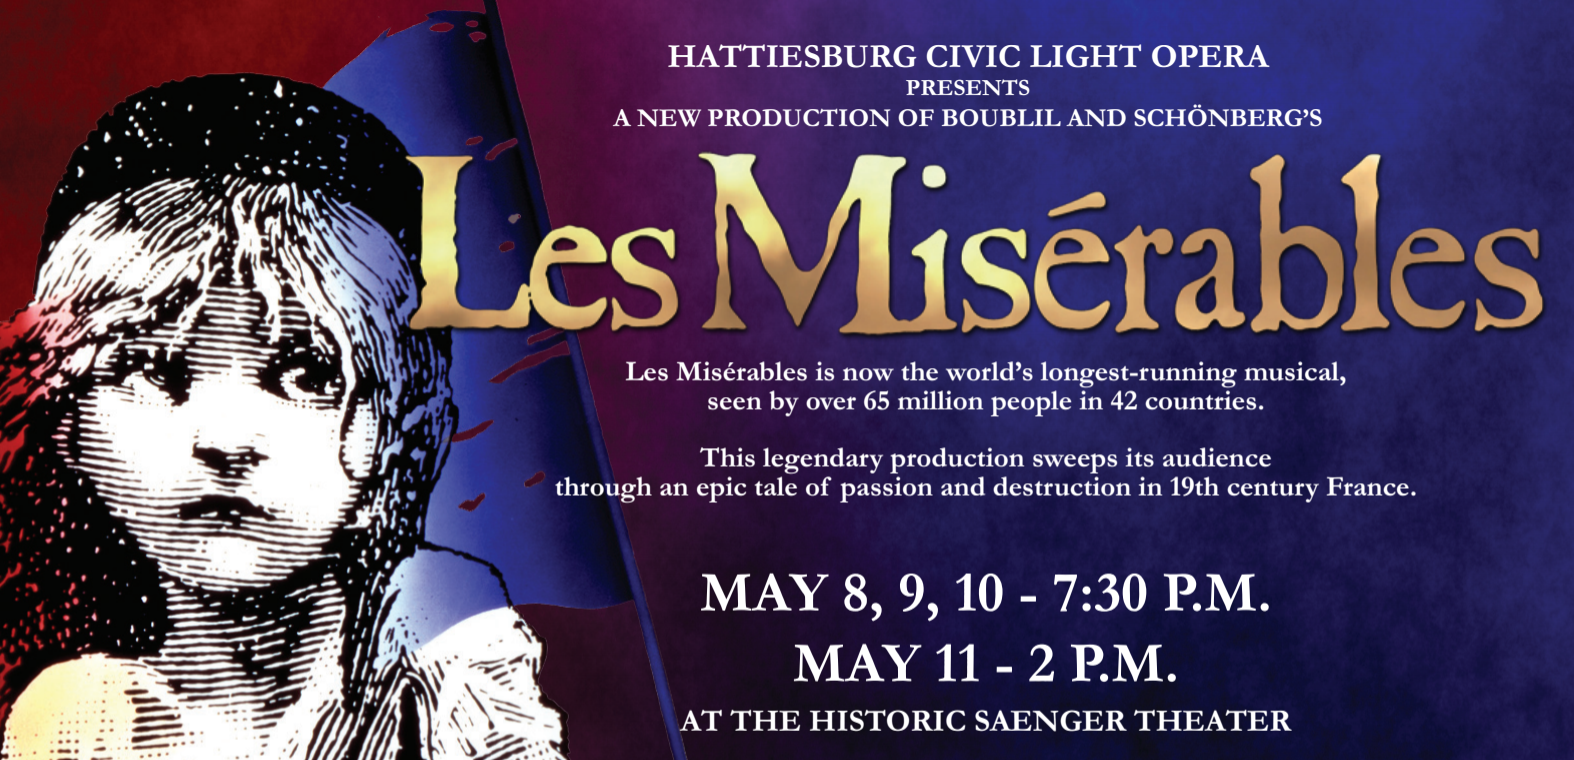 HCLO's Les Miserables   Extra Table